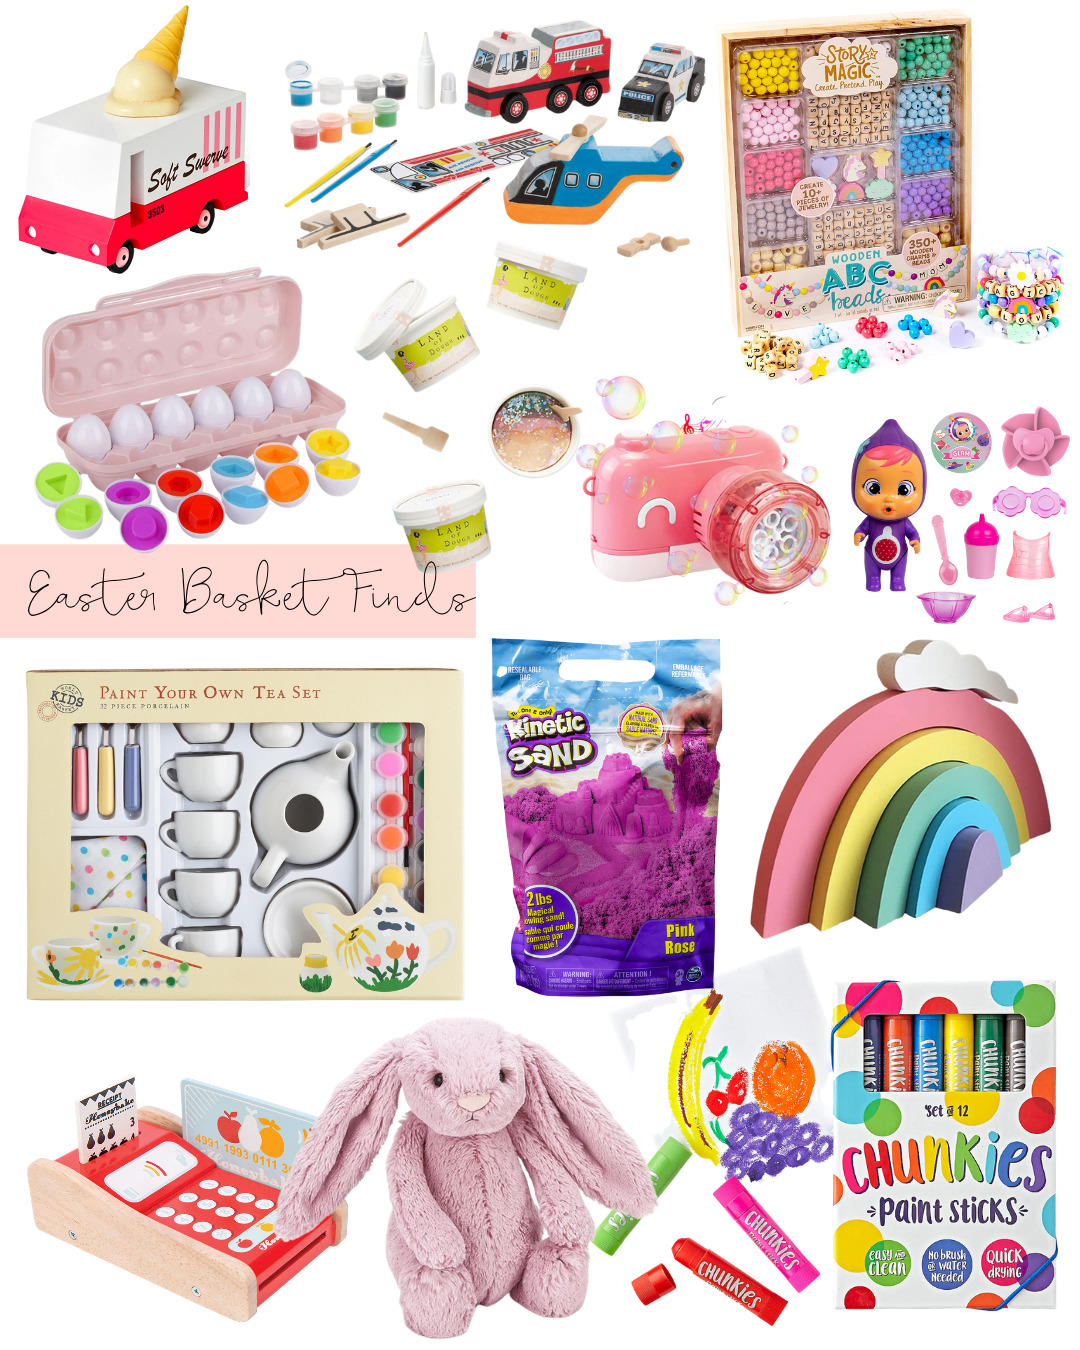 75+ Easter Basket Toys and Activities for $15 or Less | @glitterinclexi | GLITTERINC.COM